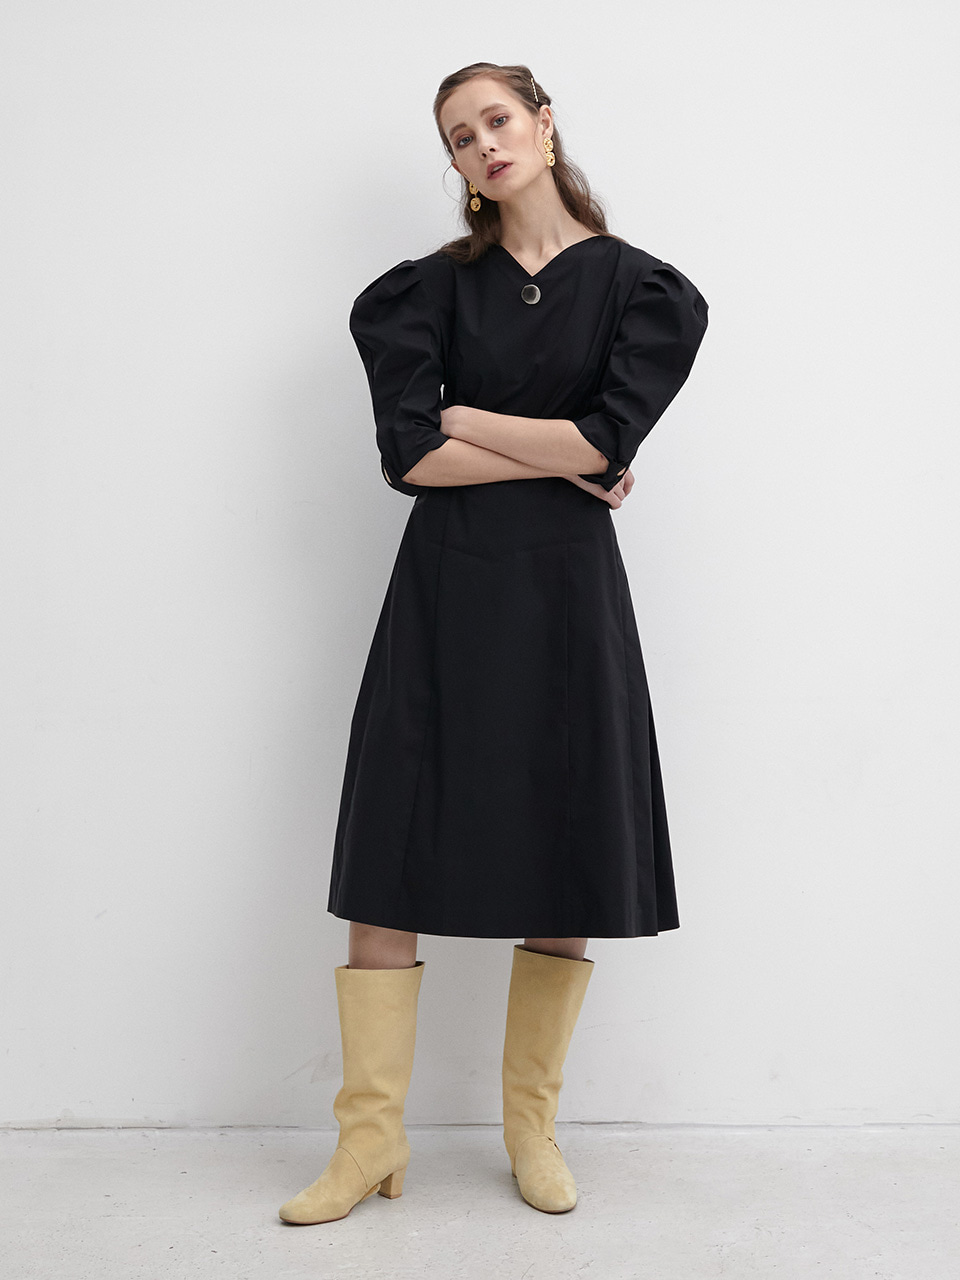 003 Sleeve twisted Bell Dress